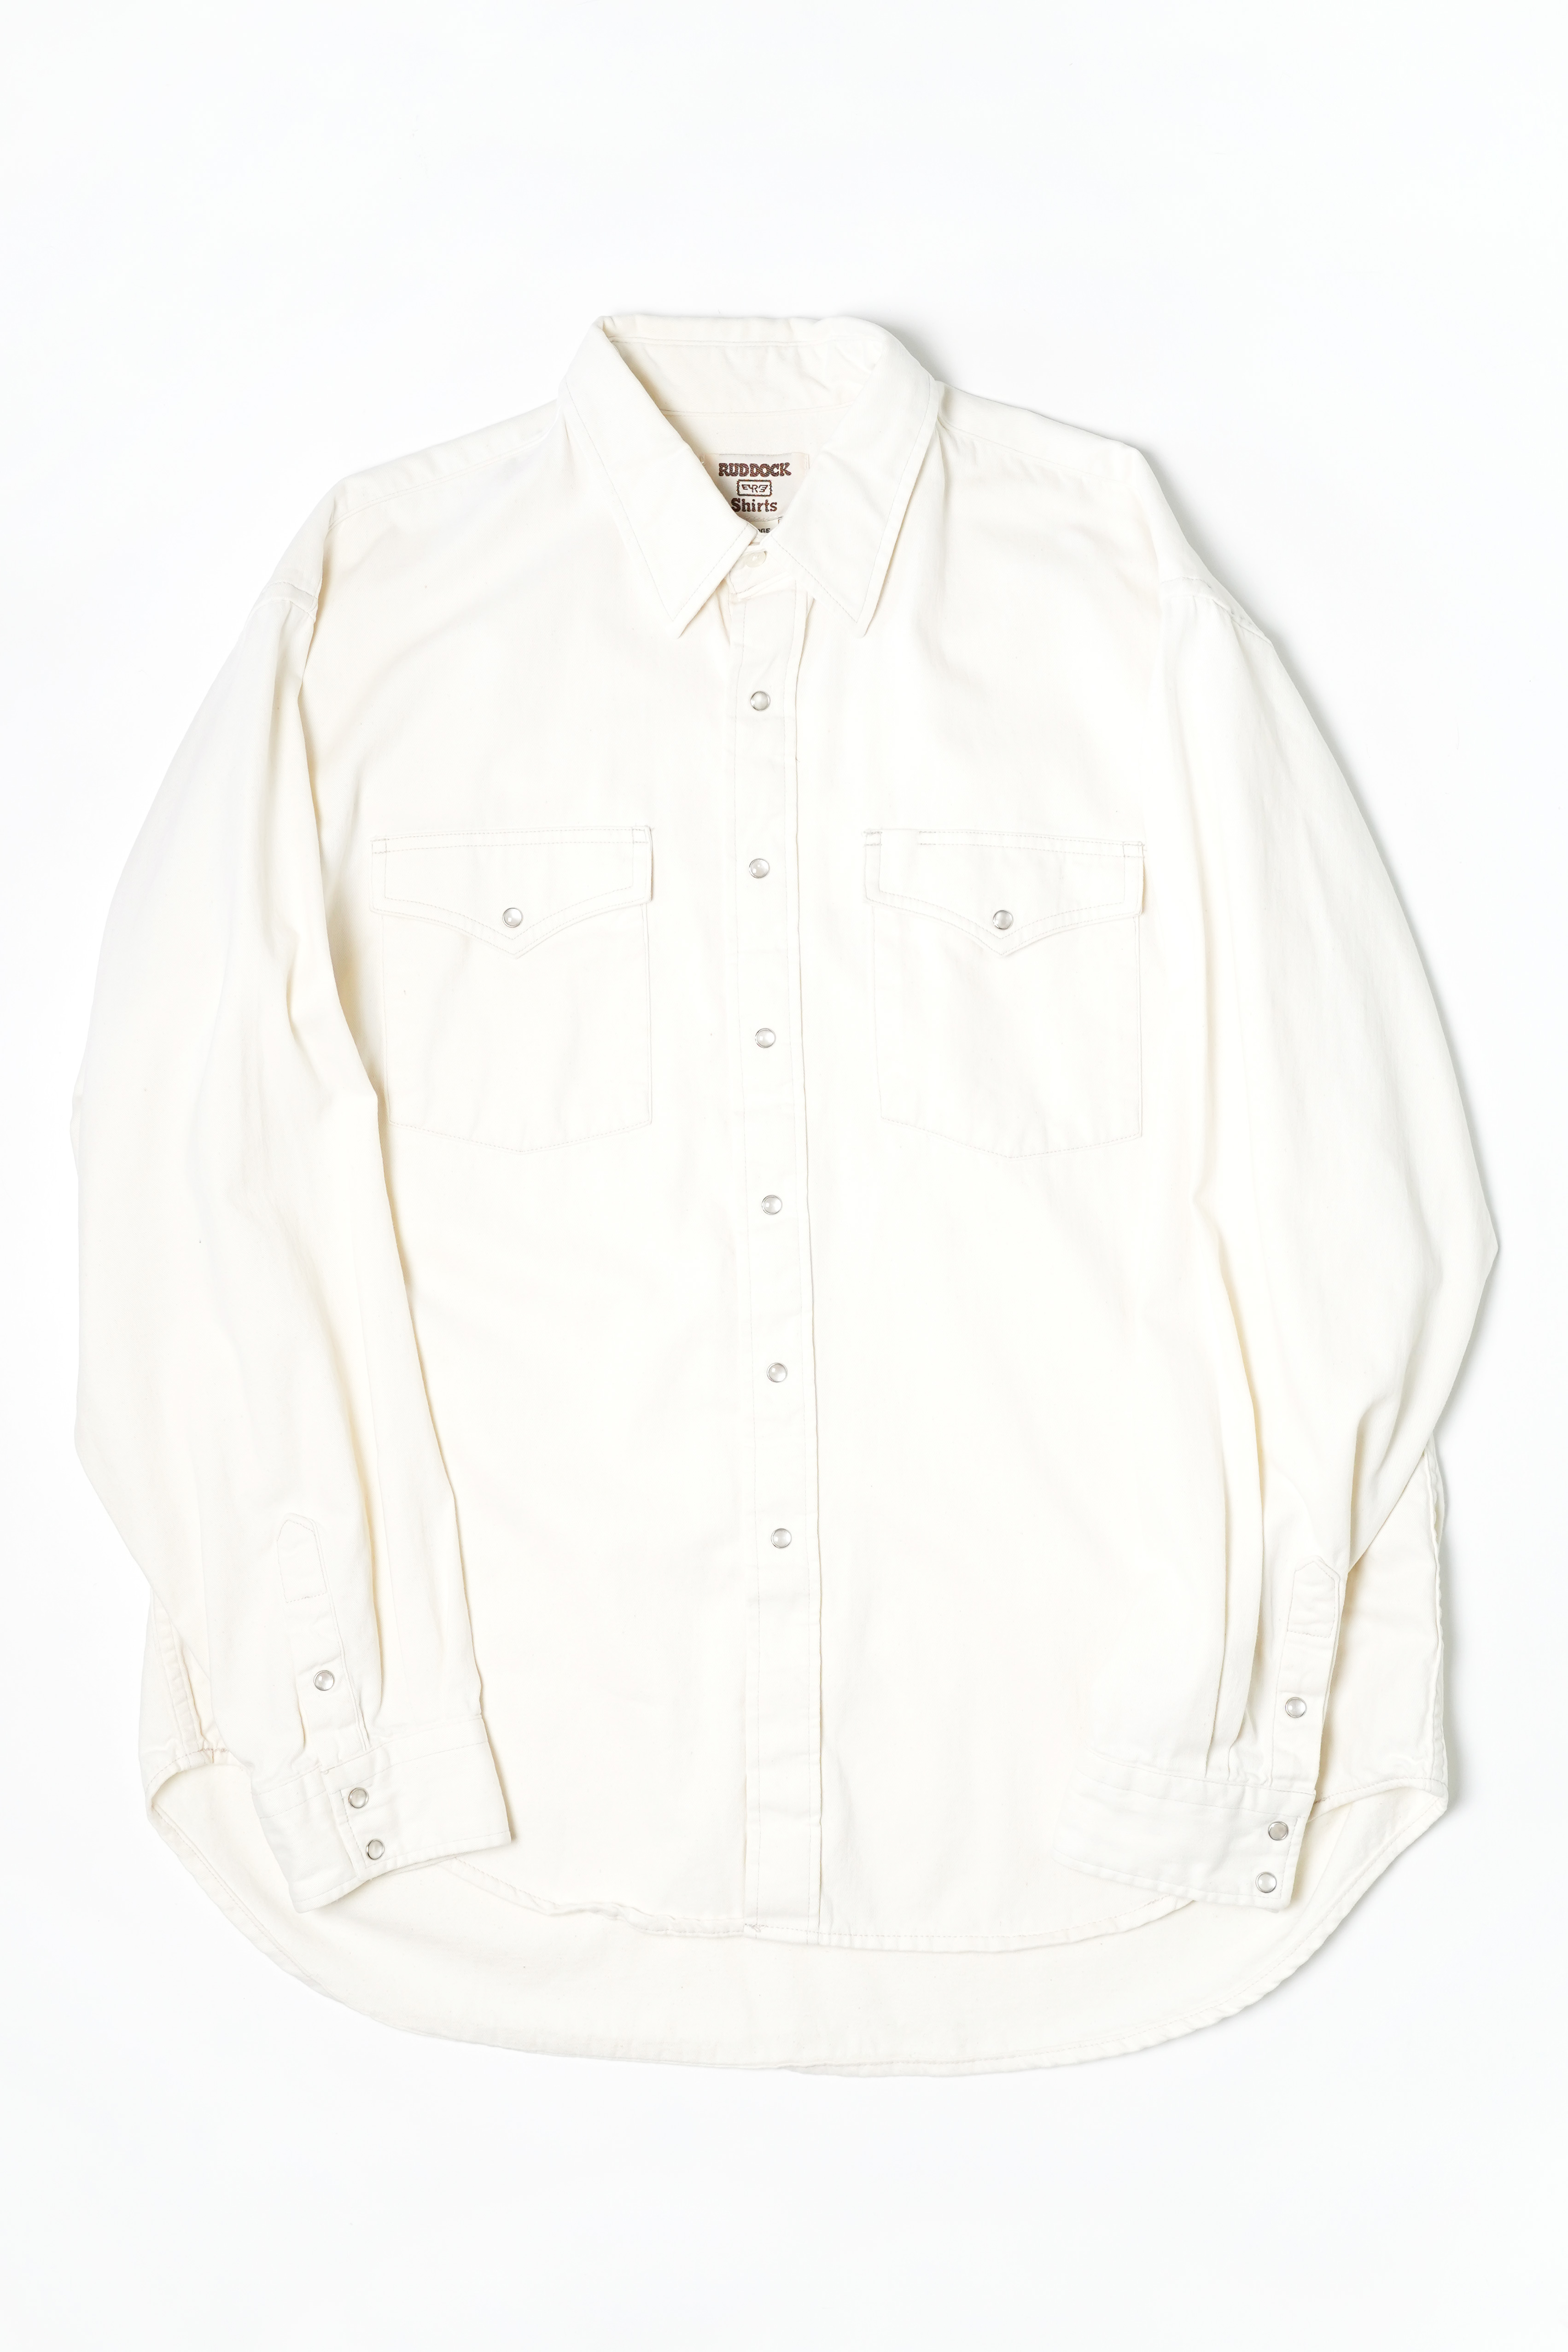 WESTERN DETAIL SNAP BUTTON SHIRTS